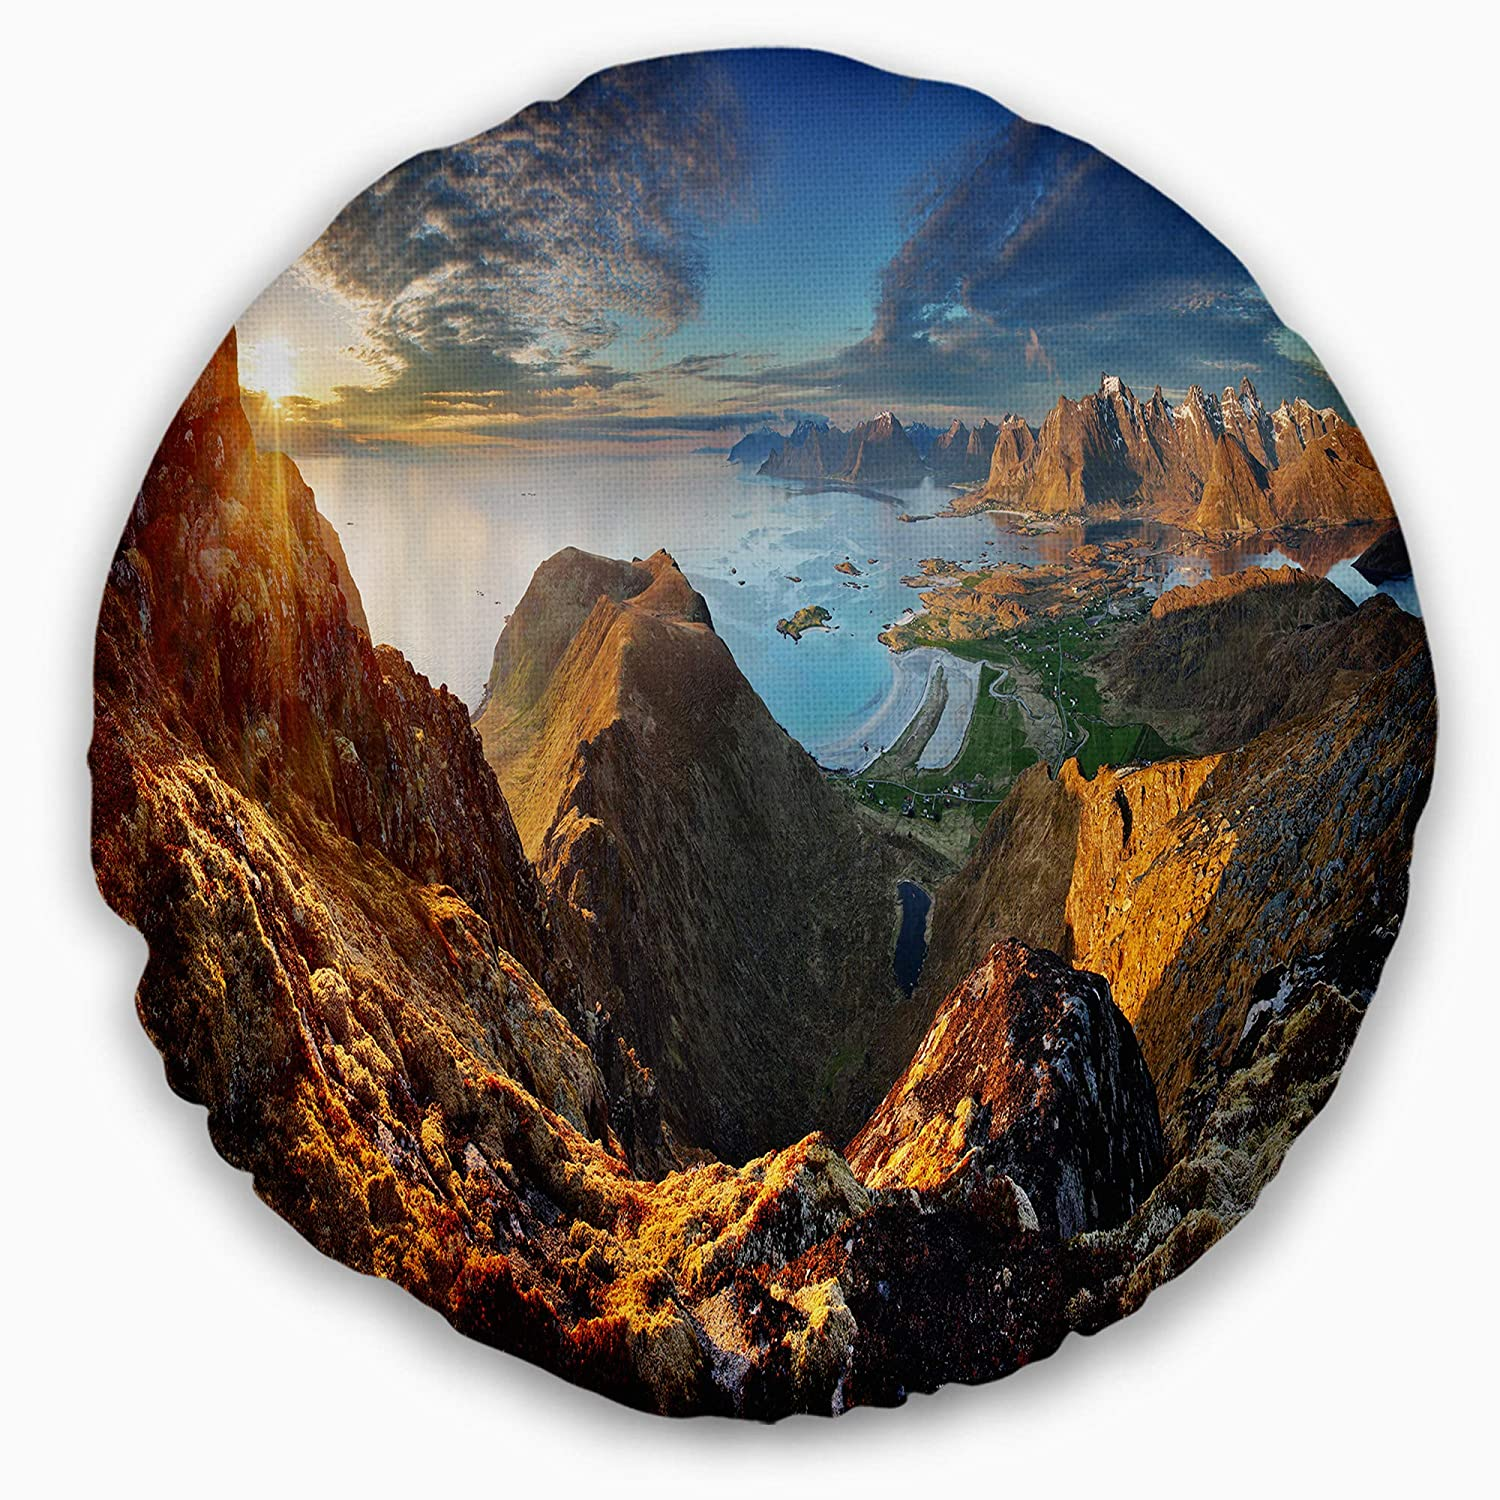 Designart CU14041-20-20-C Ocean and Mountains Panorama\' Landscape Printed Round Cushion Cover for Living Room, Sofa Throw Pillow 20\', Insert Side